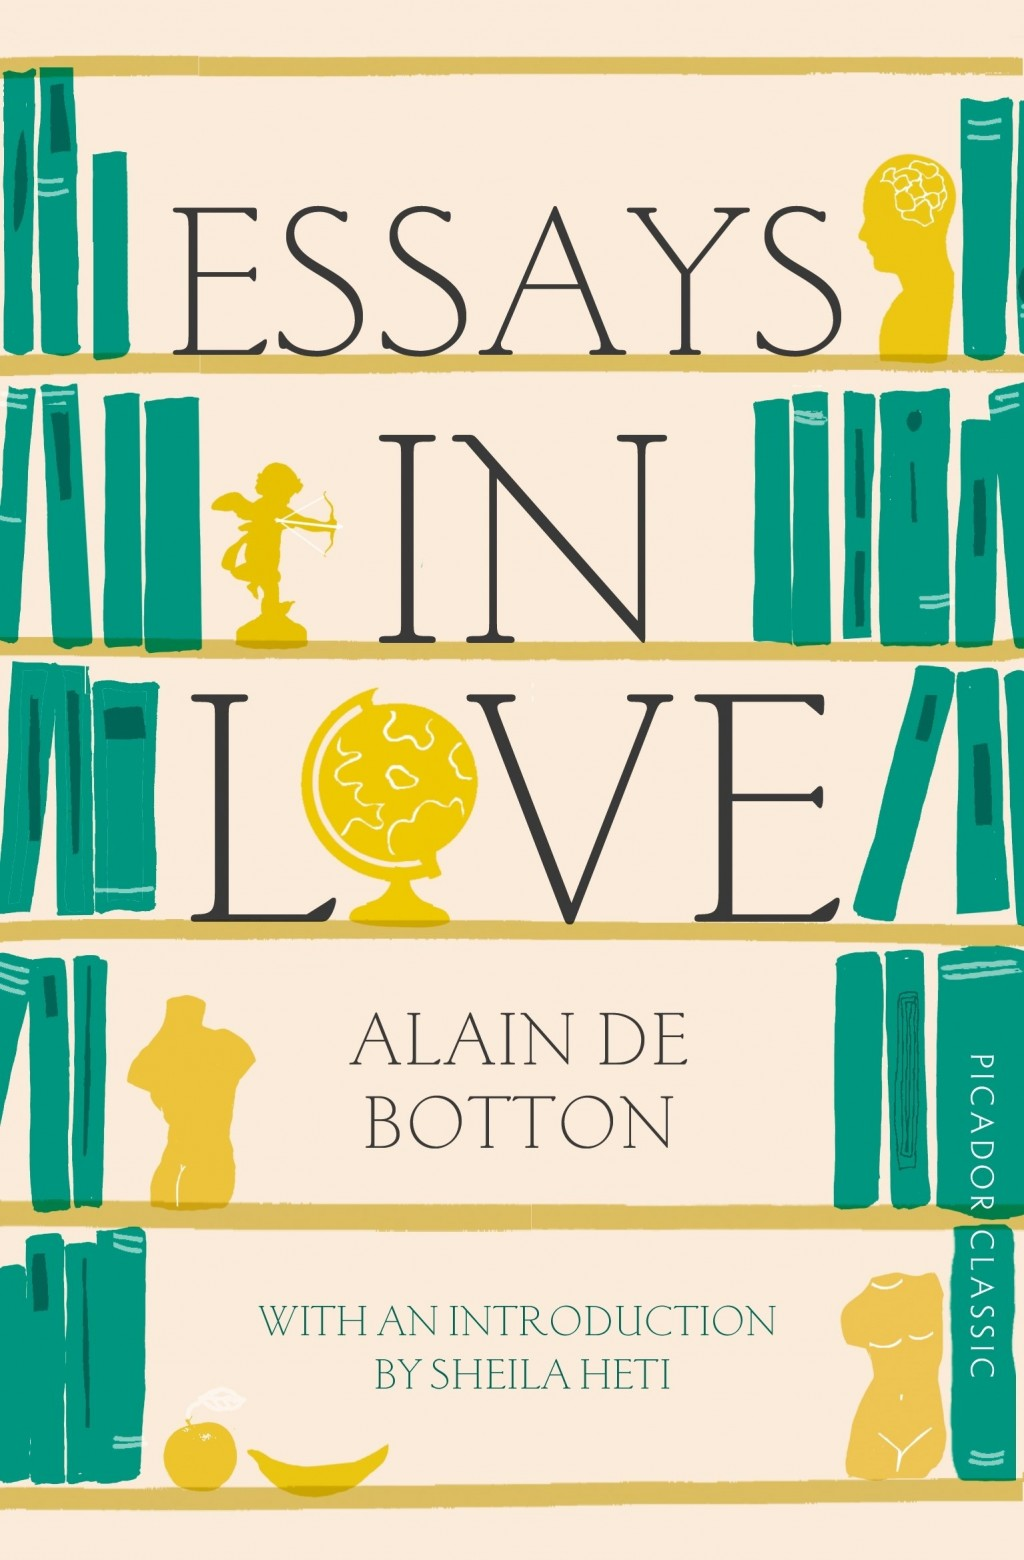 008 Essays On Love Essay Example Awesome Alain De Botton Quotes Review Large